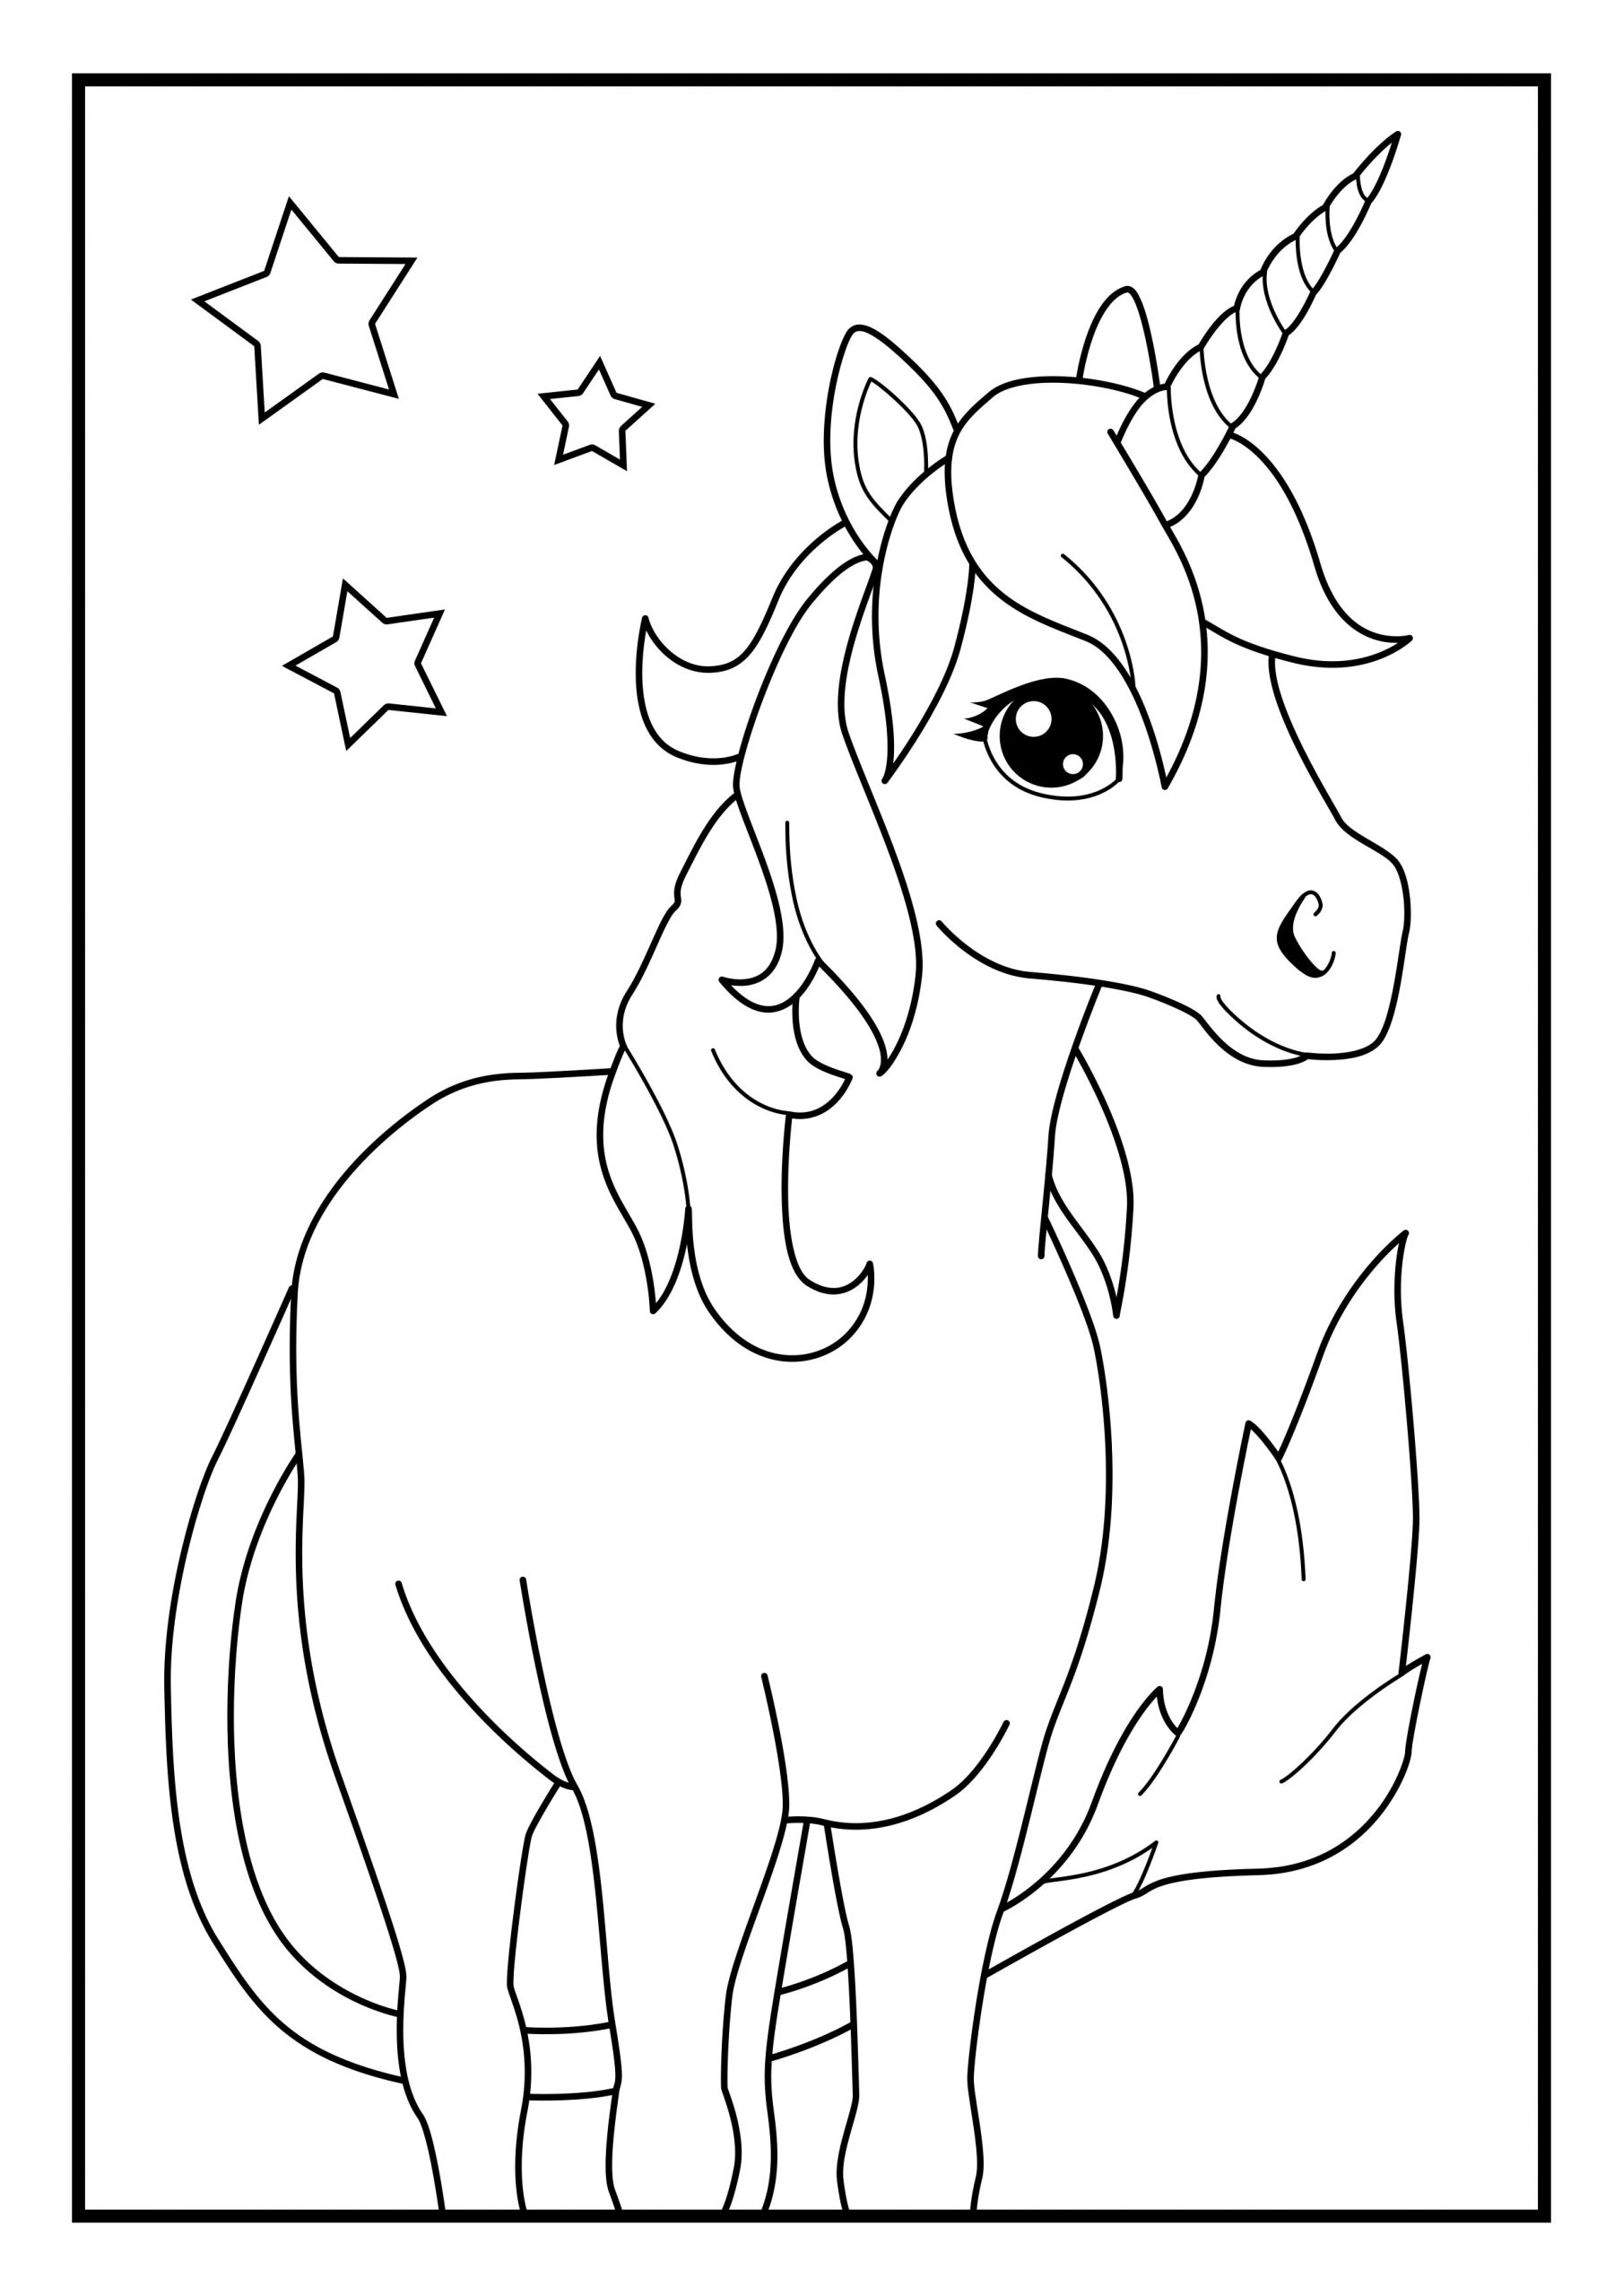 Unicorn coloring picture page